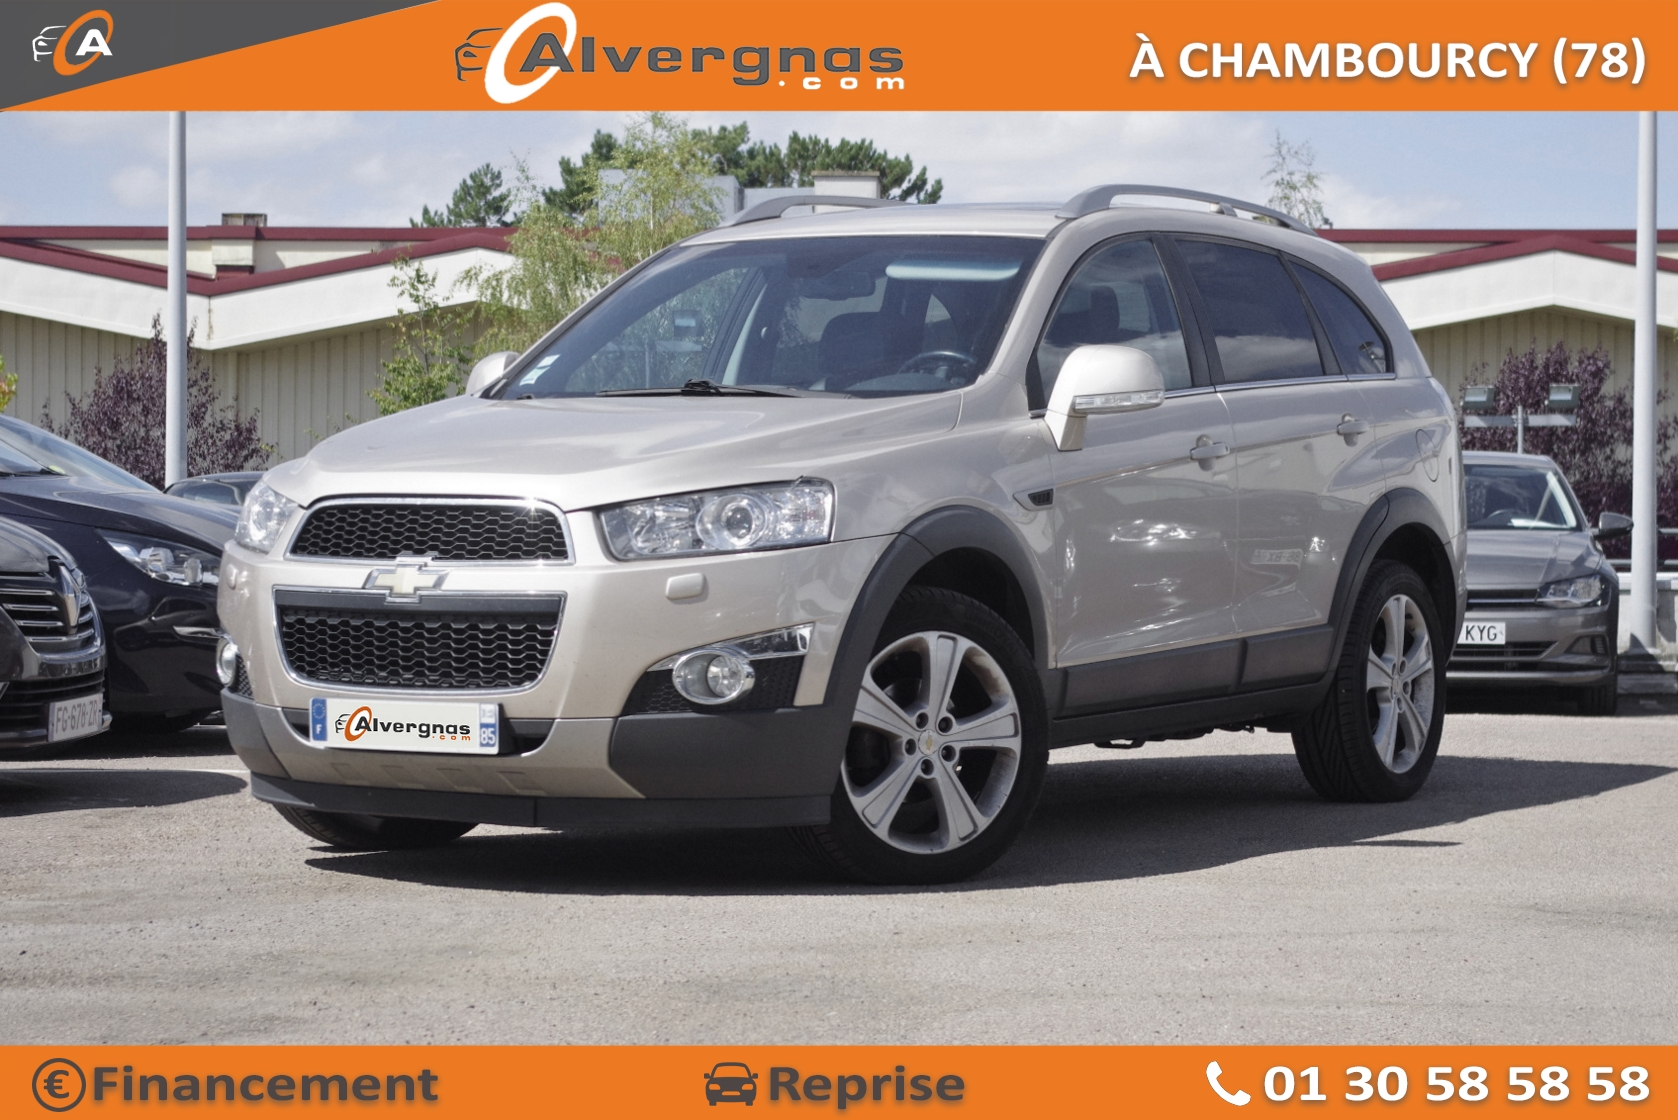 CHEVROLET CAPTIVA d'occasion sur Paris